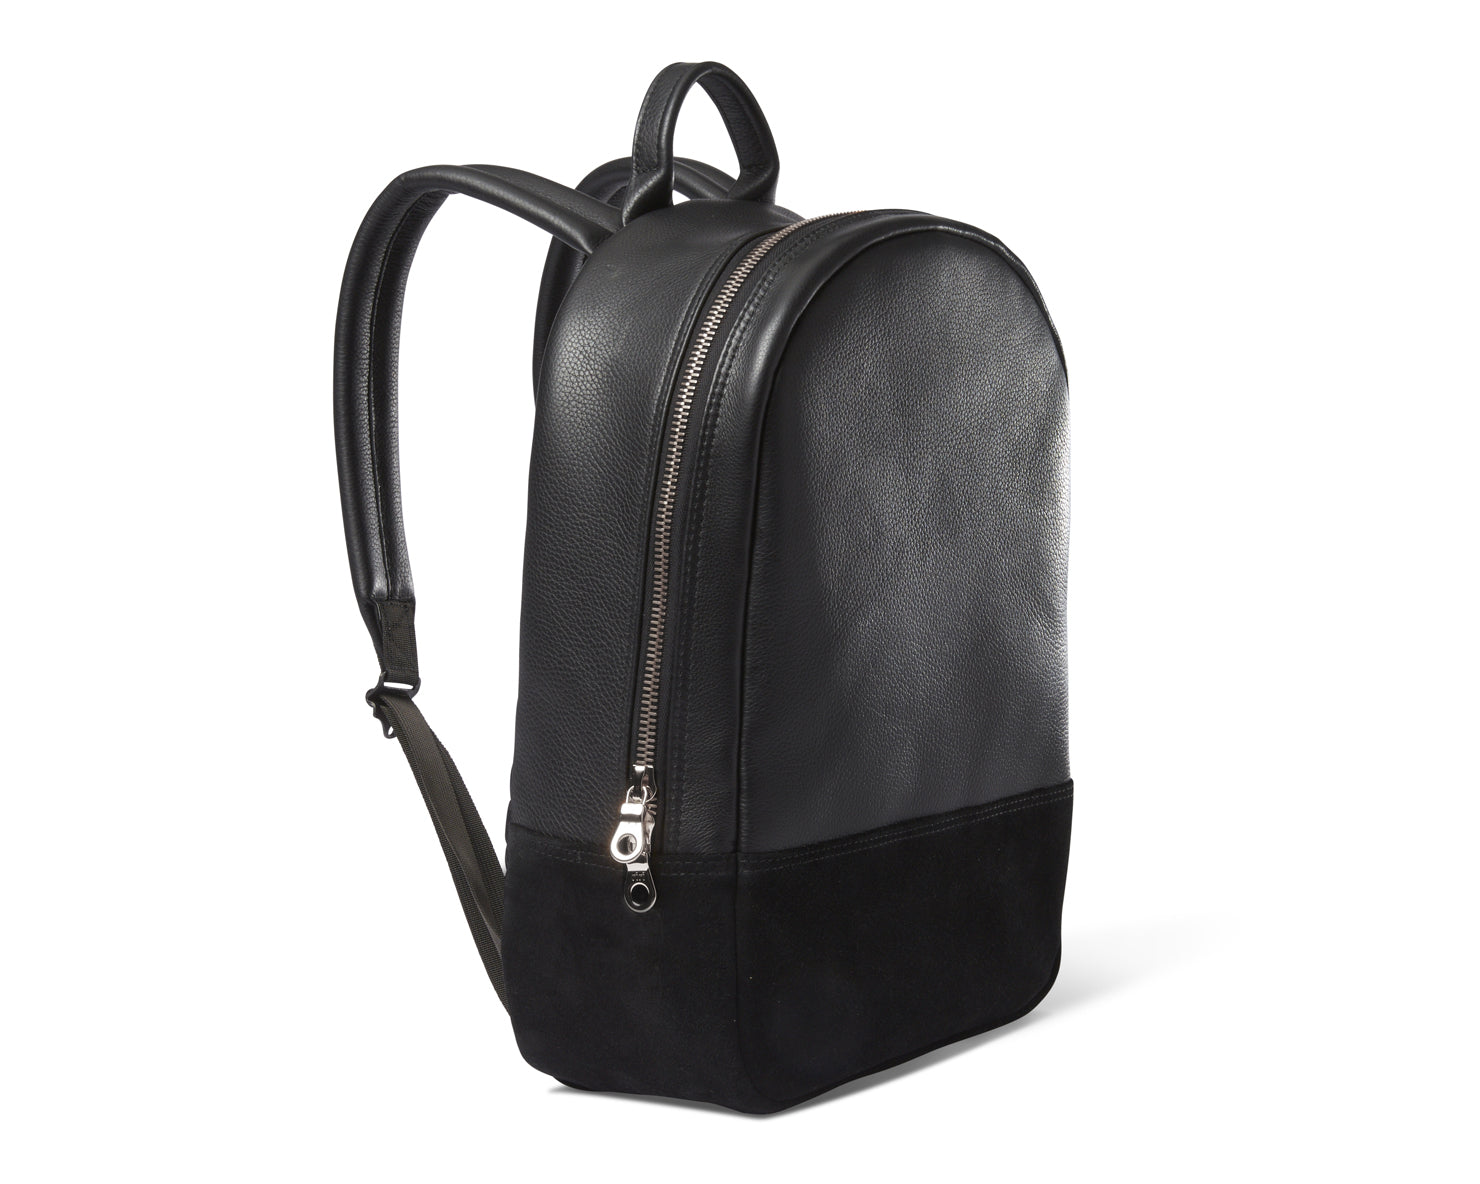 MINI DAYPACK | KILLSPENCER® - Black Leather